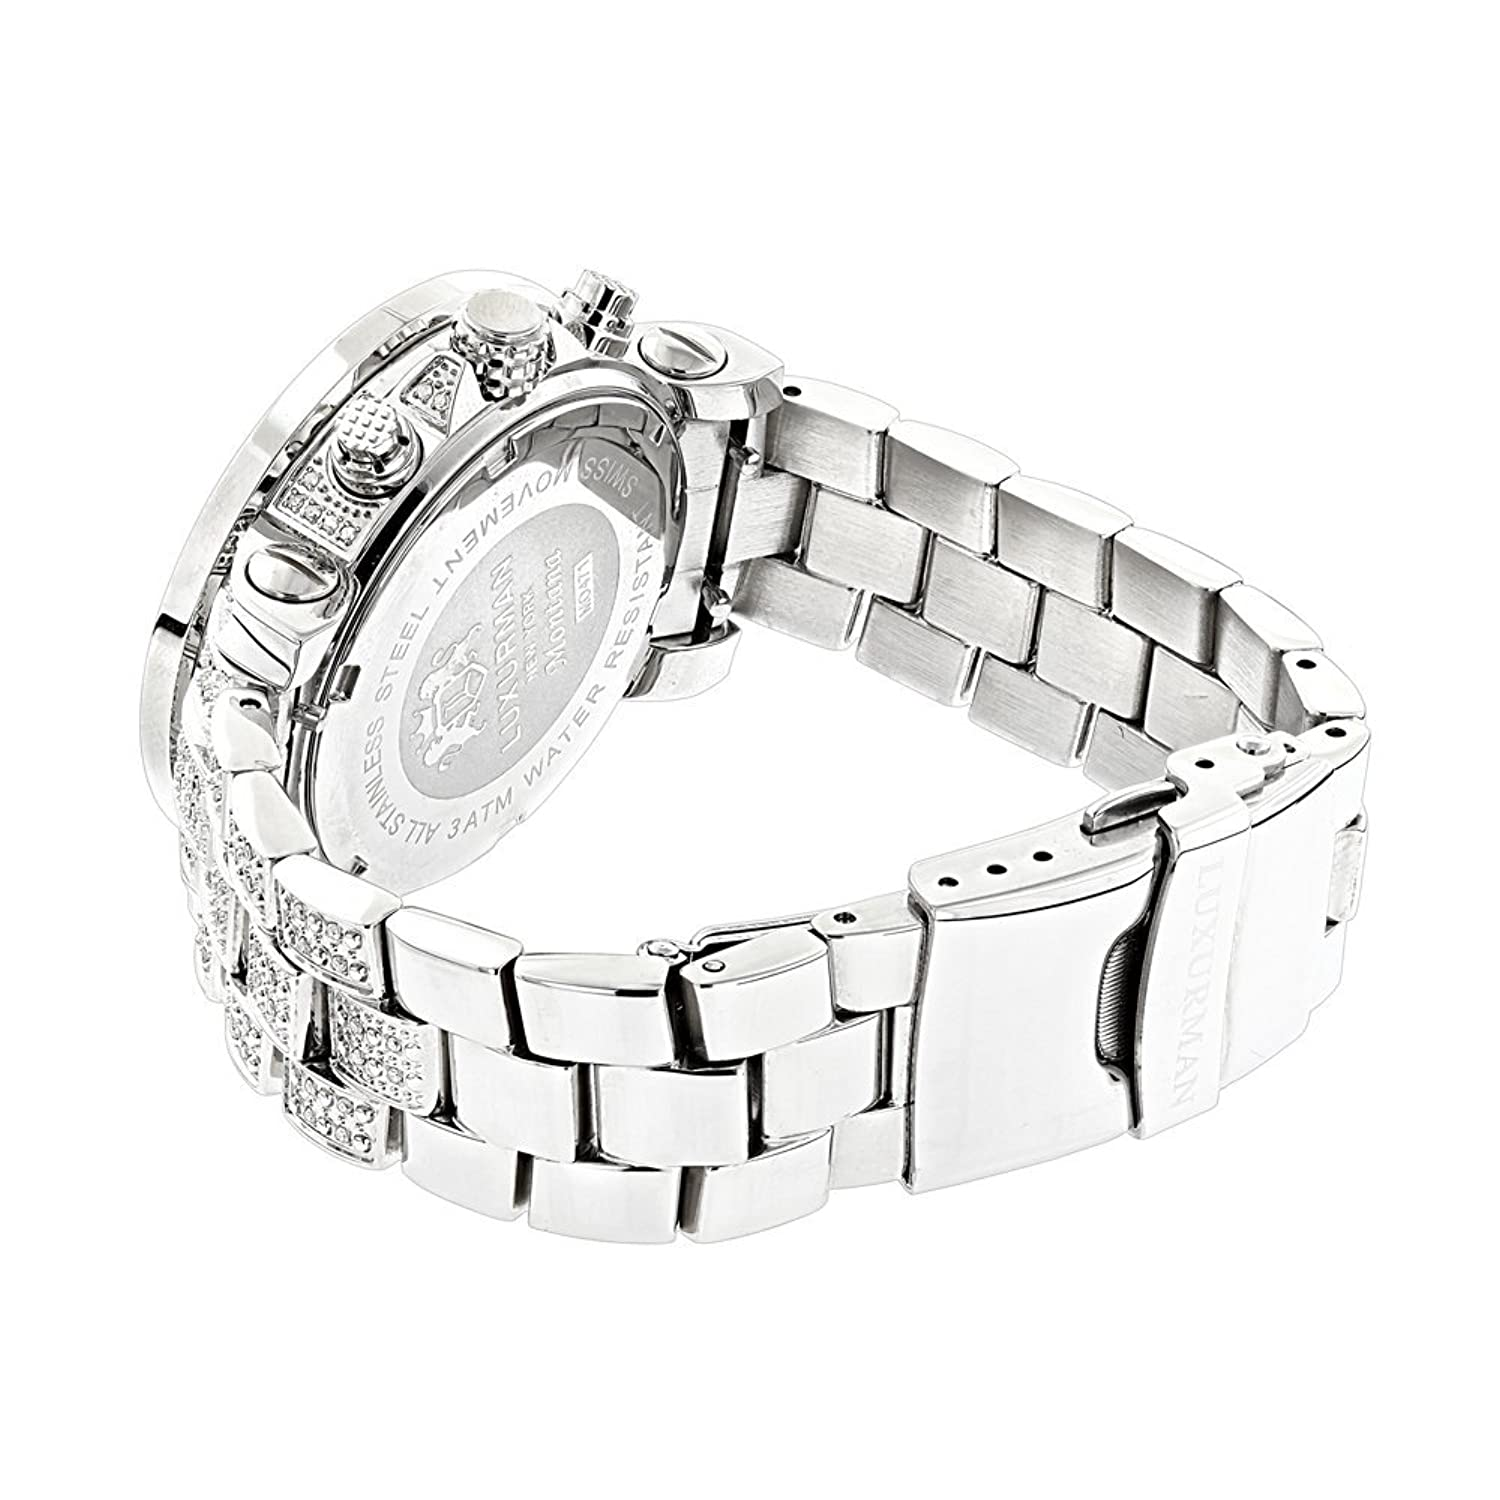 platinum pin joe bracelet midwestjewellers watch mens watches diamond rodeo bazel full